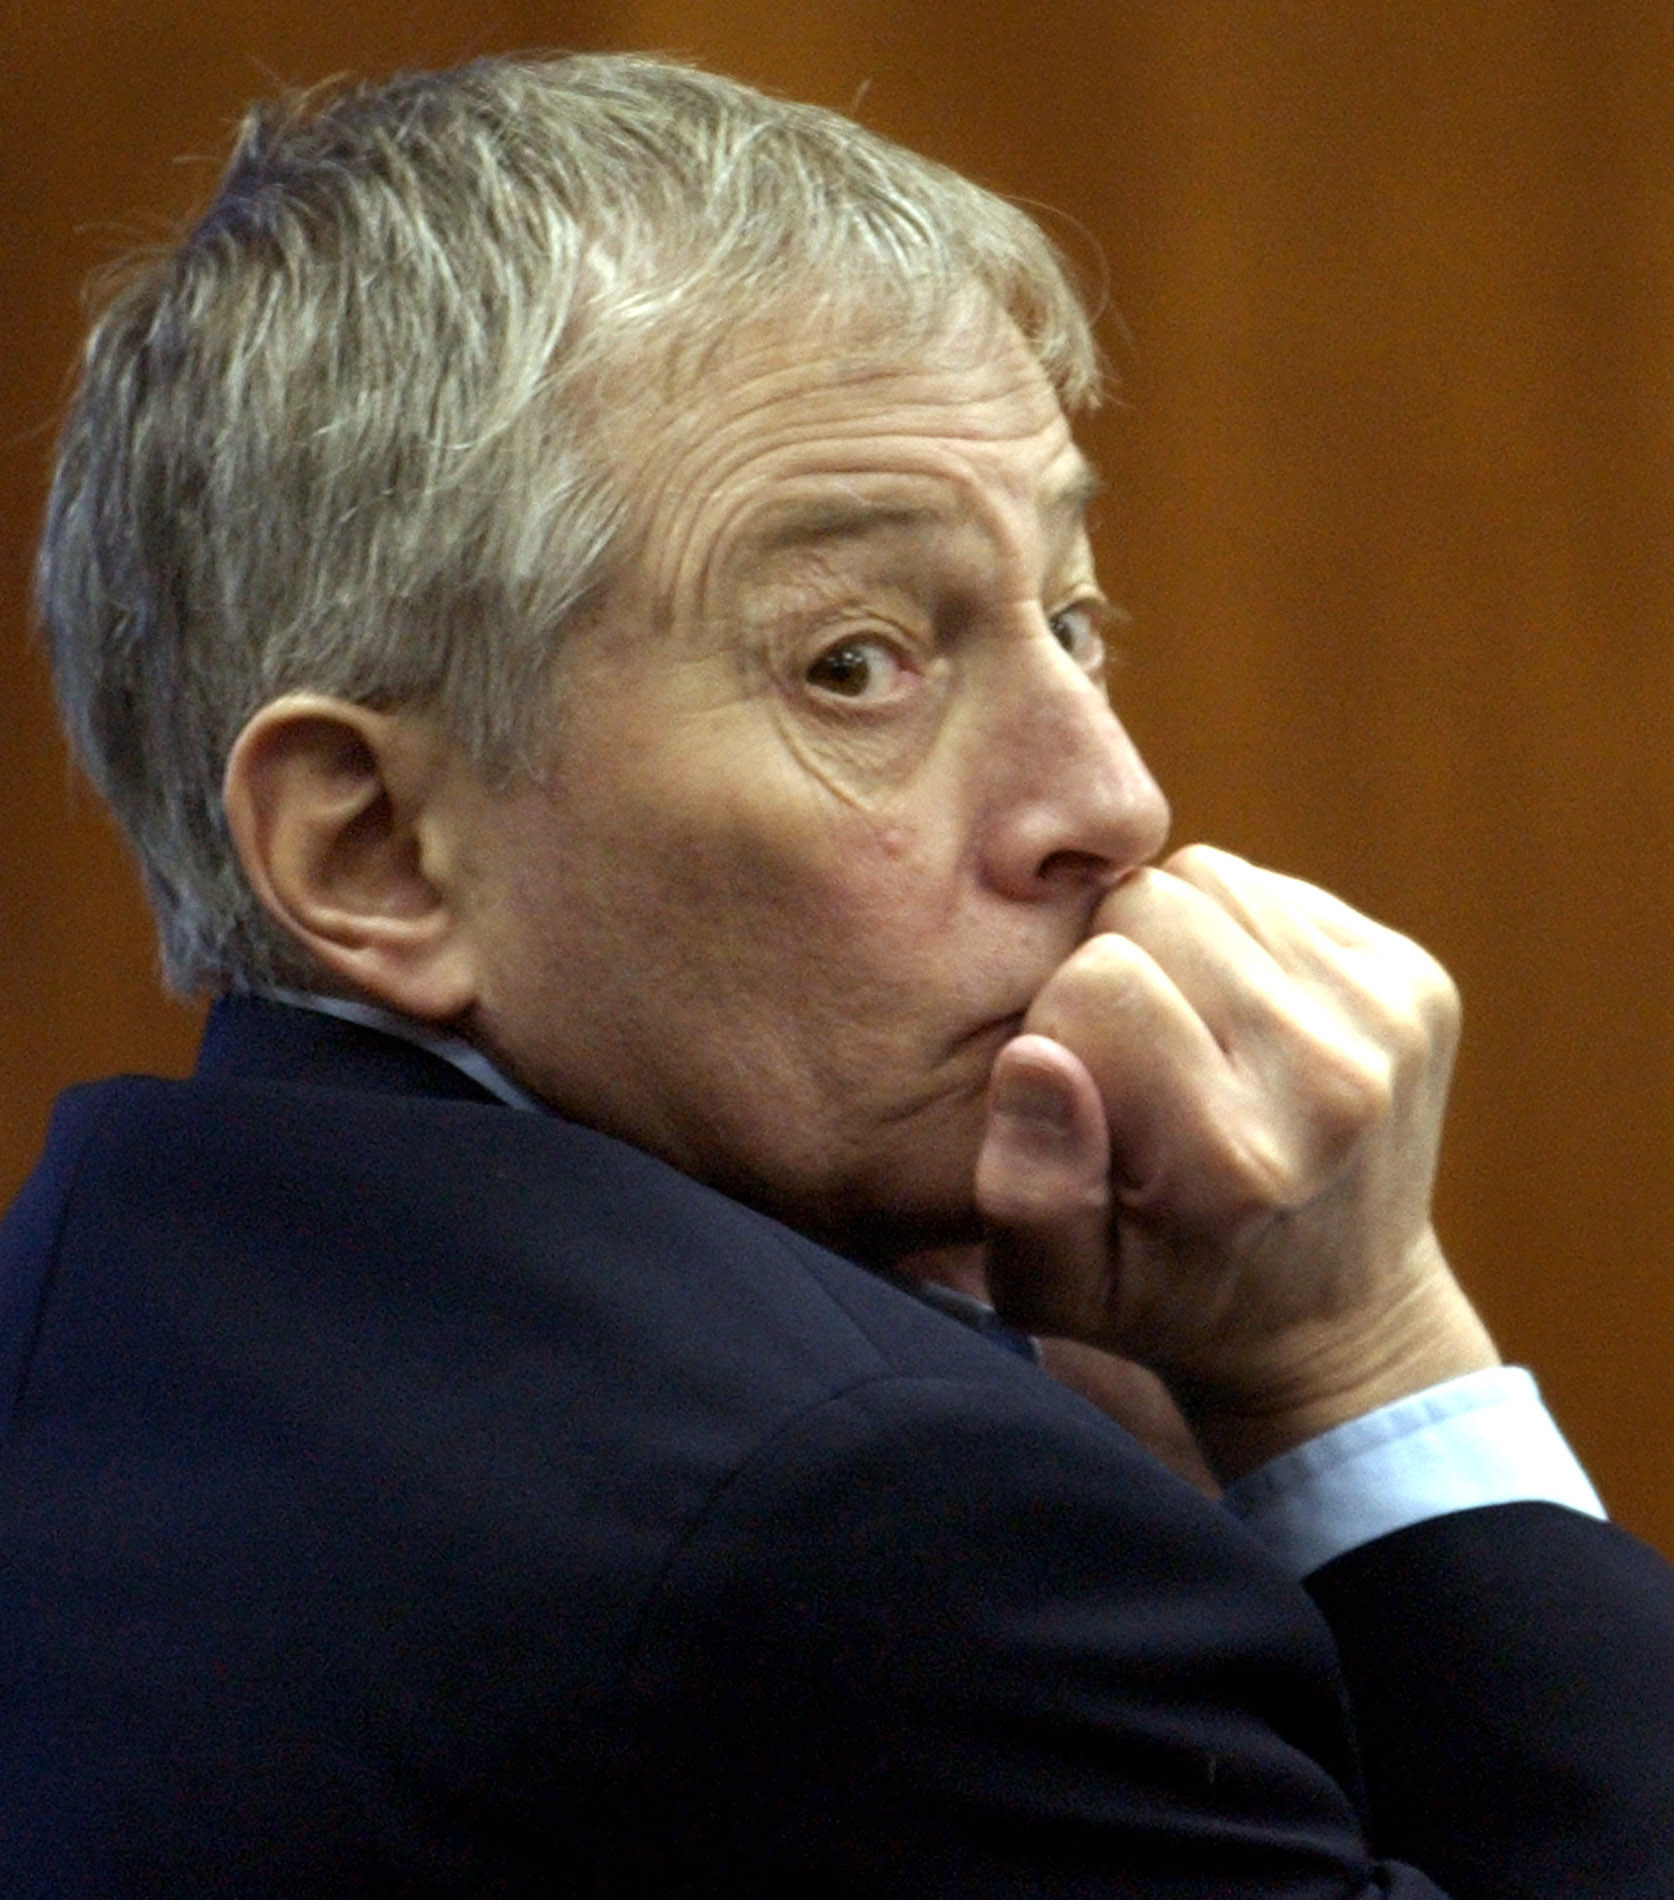 Pictures The Life And Deaths Of Robert Durst The